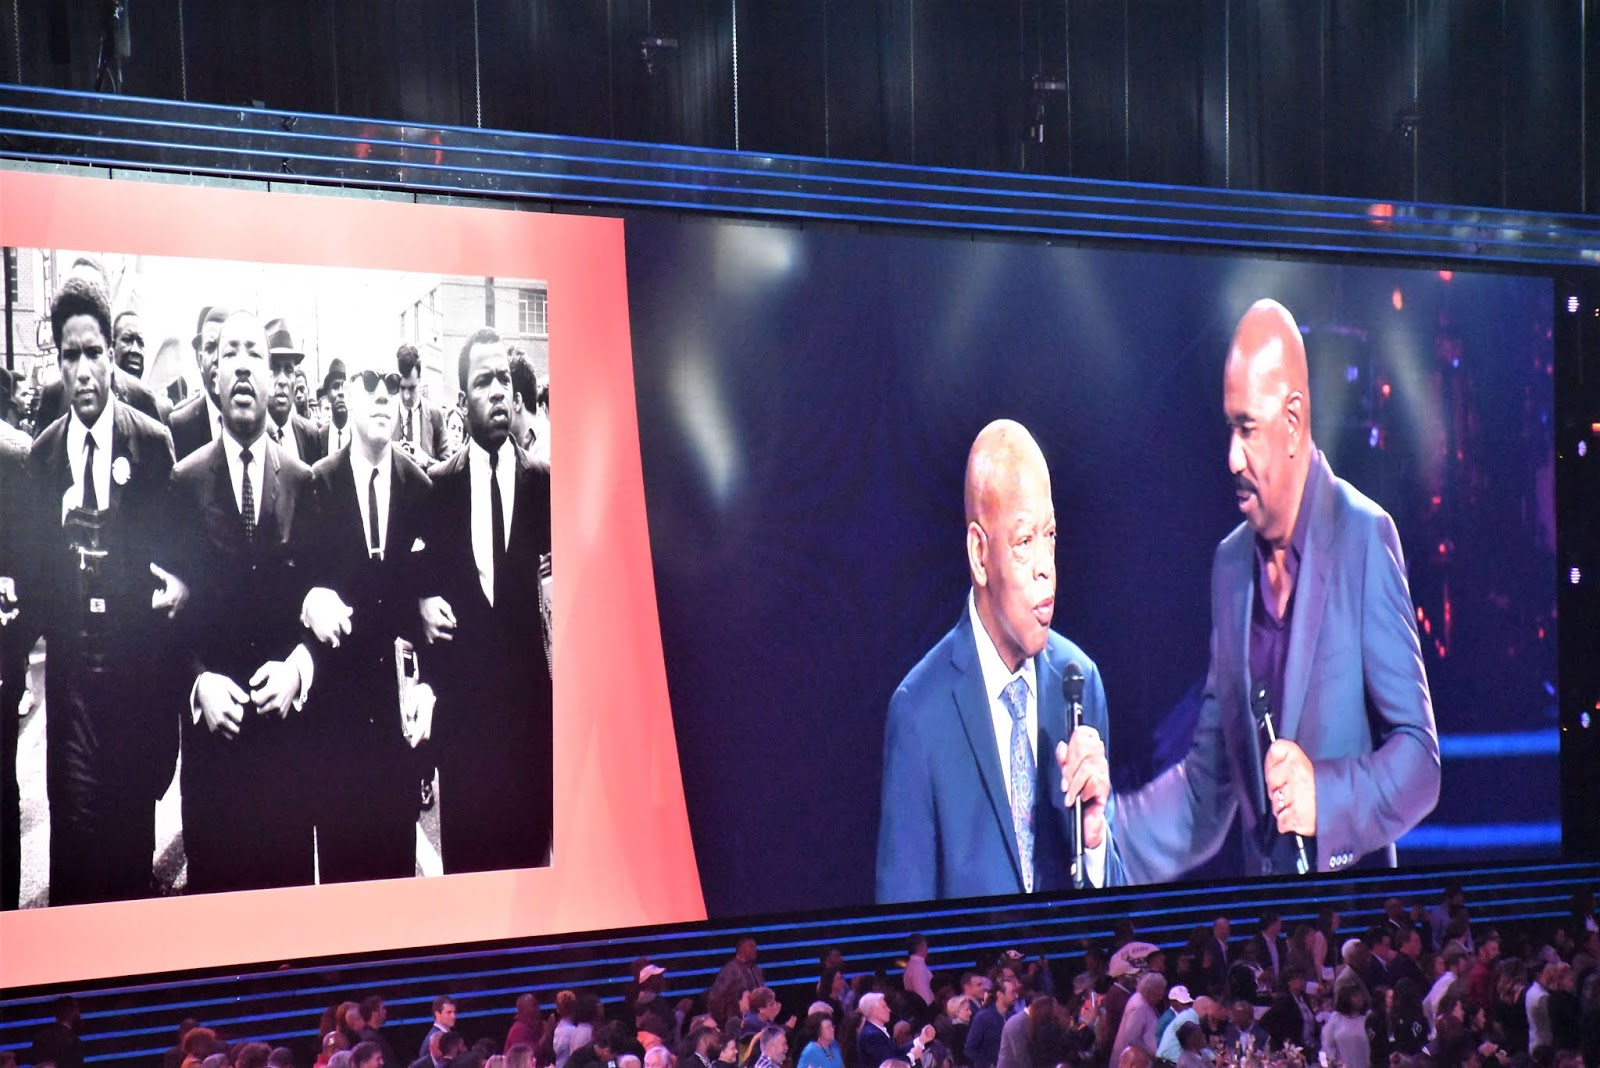 Beloved Benefit at Mercedes Benz Stadium with John Lewis and Steve Harvey